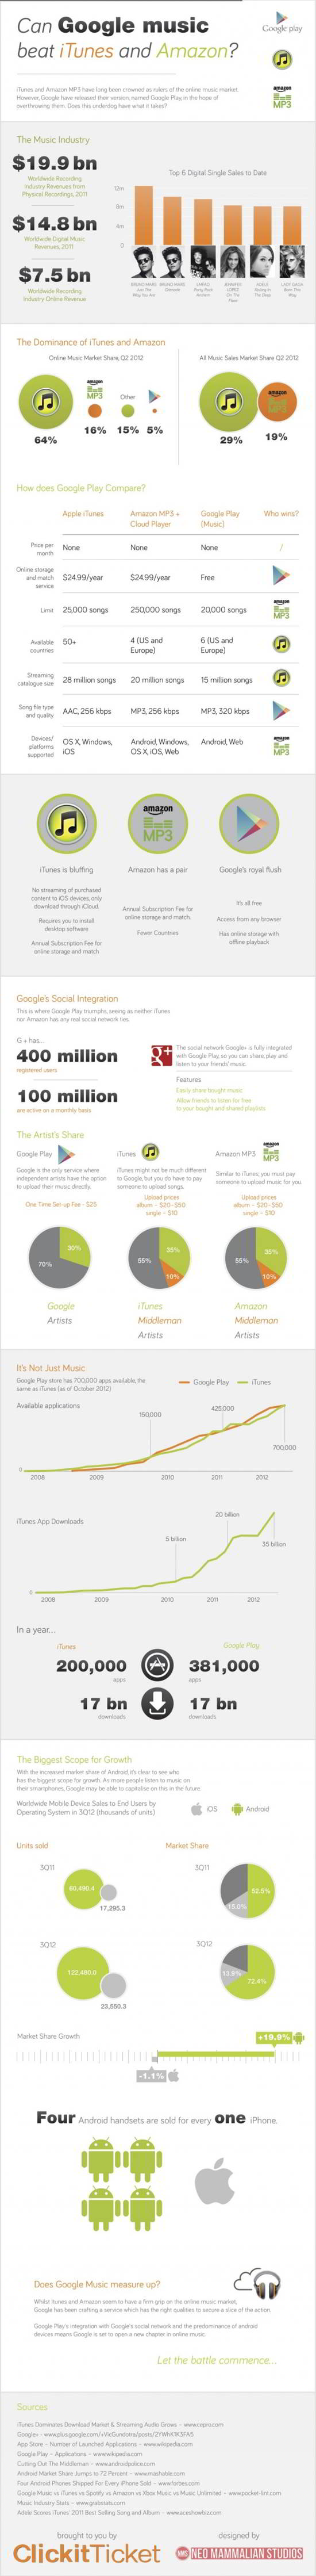 03 Google Music vs. Itunes & Amazon Infographic